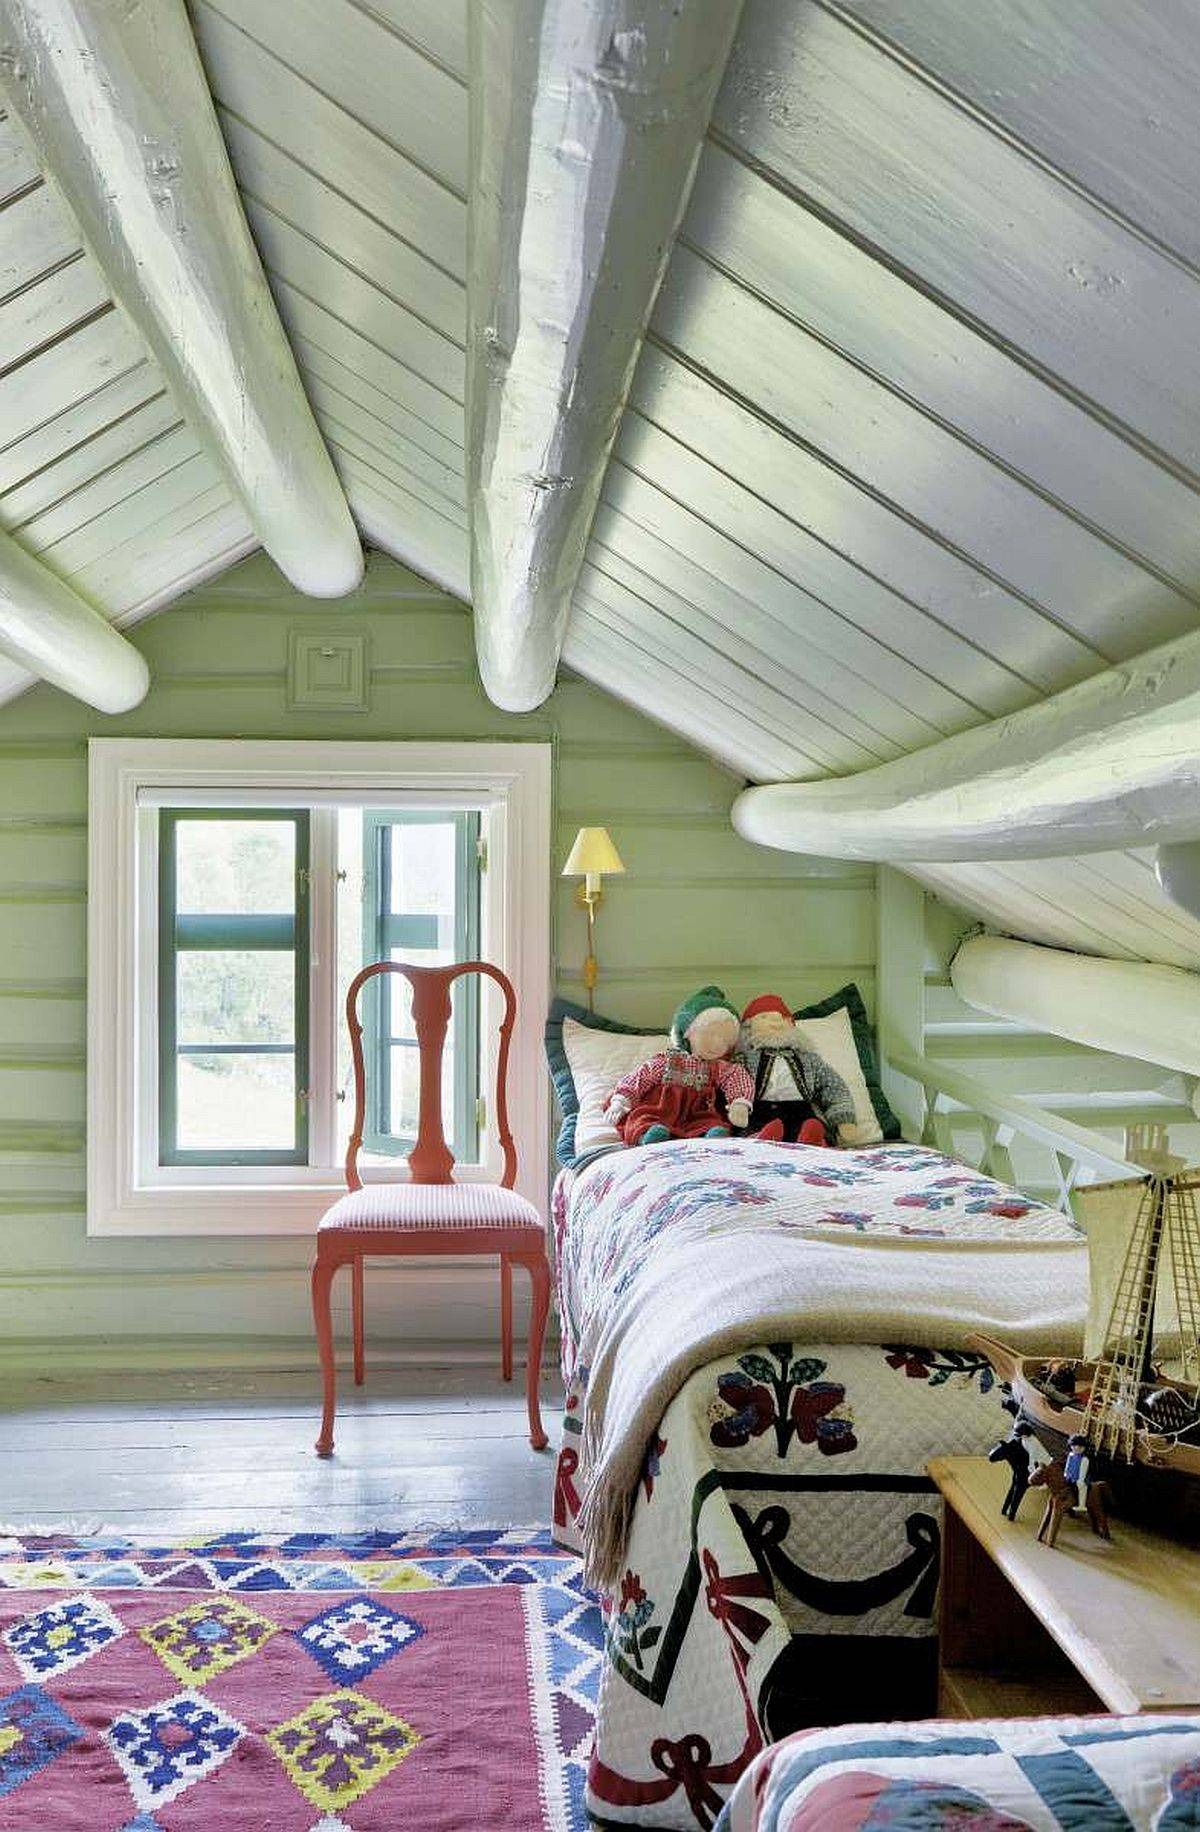 Cozy-attic-kids-bedroom-with-paste-green-in-the-backdrop-97842